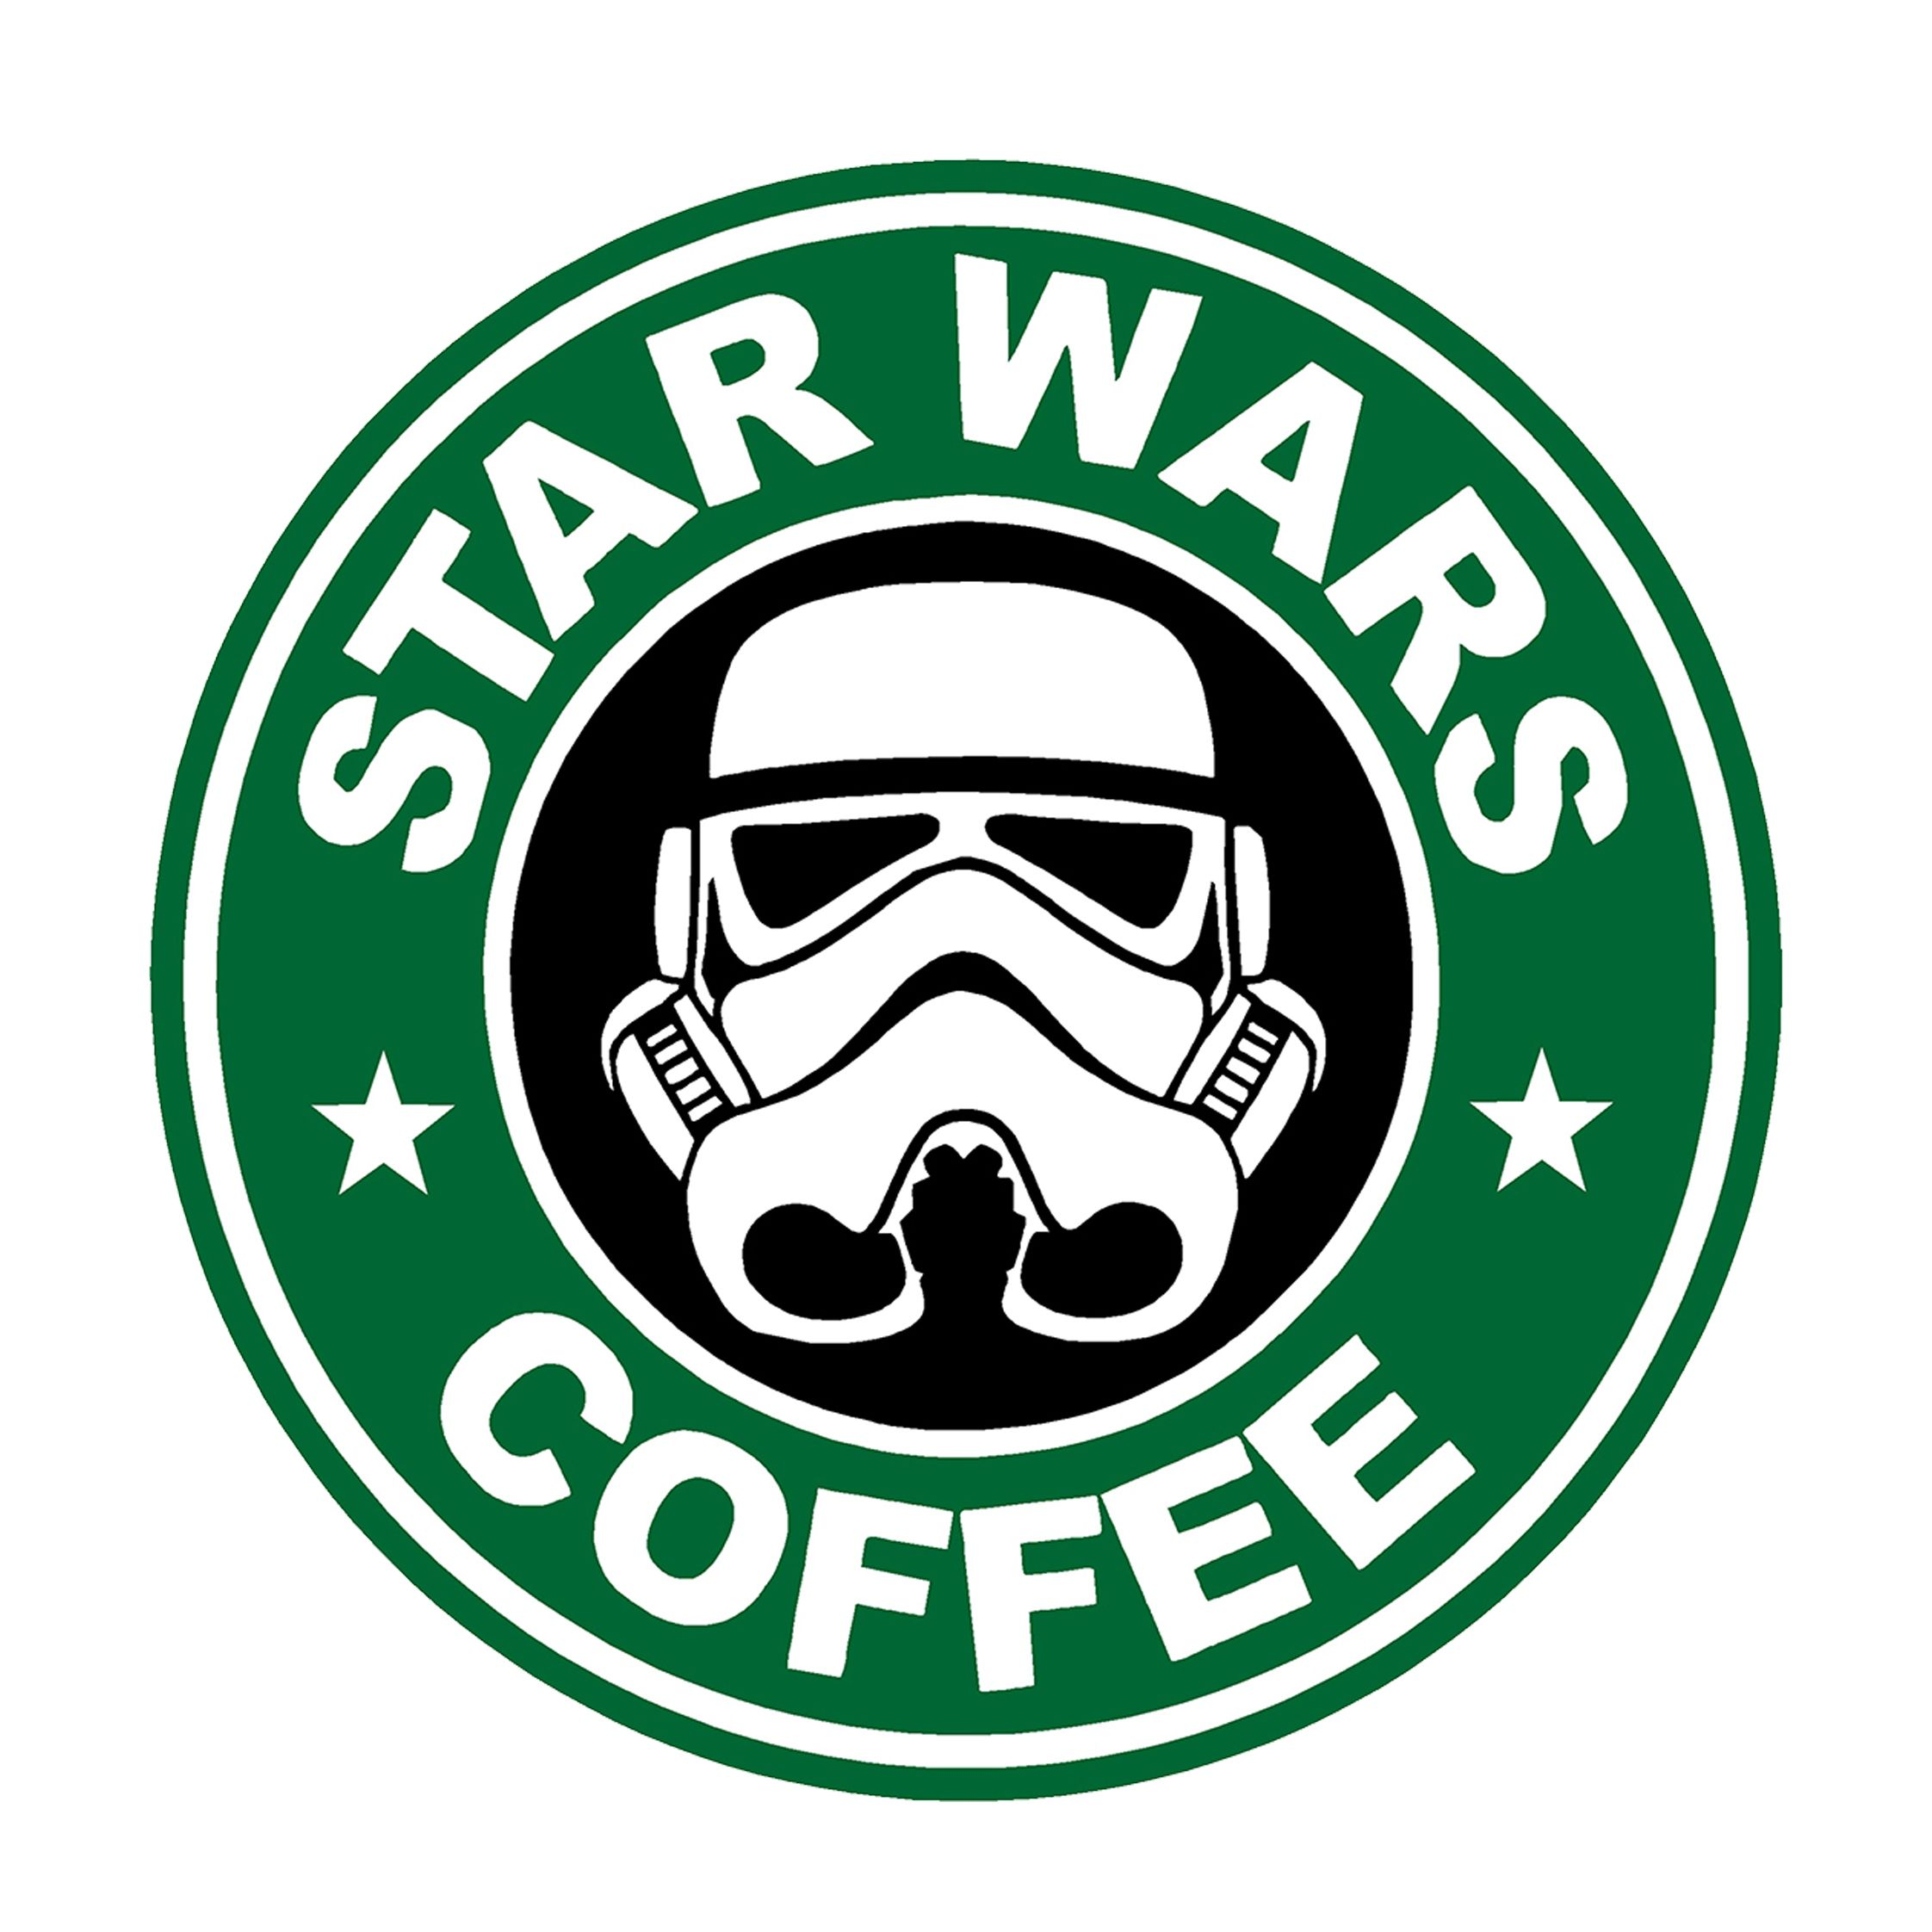 Star Wars Coffee #instathreds - https://instathreds.co/product/star-wars-coffee